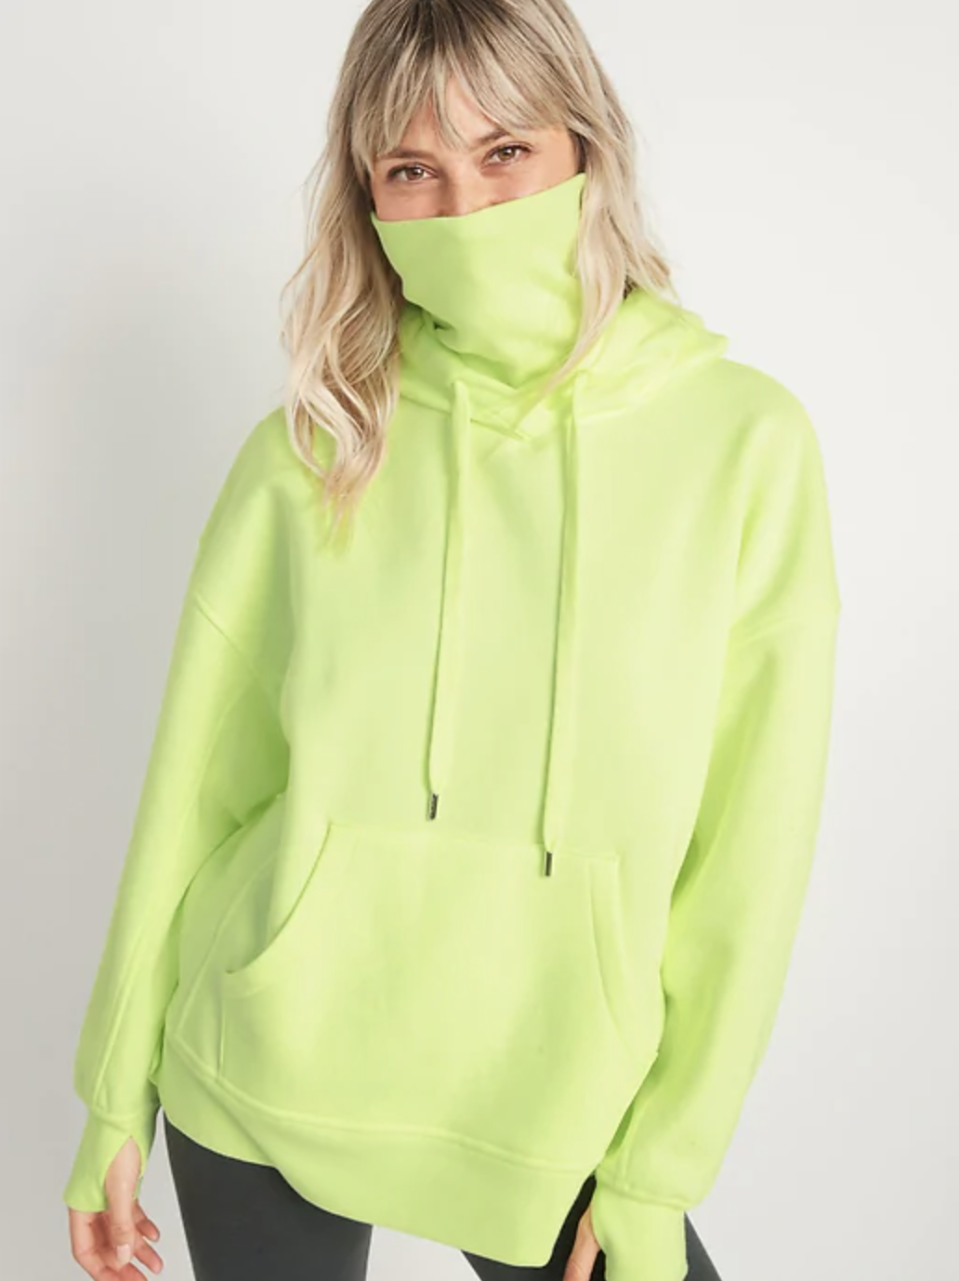 Oversized Rib-Knit Funnel-Neck Pullover Hoodie for Women in light bulb. Image via Old Navy.